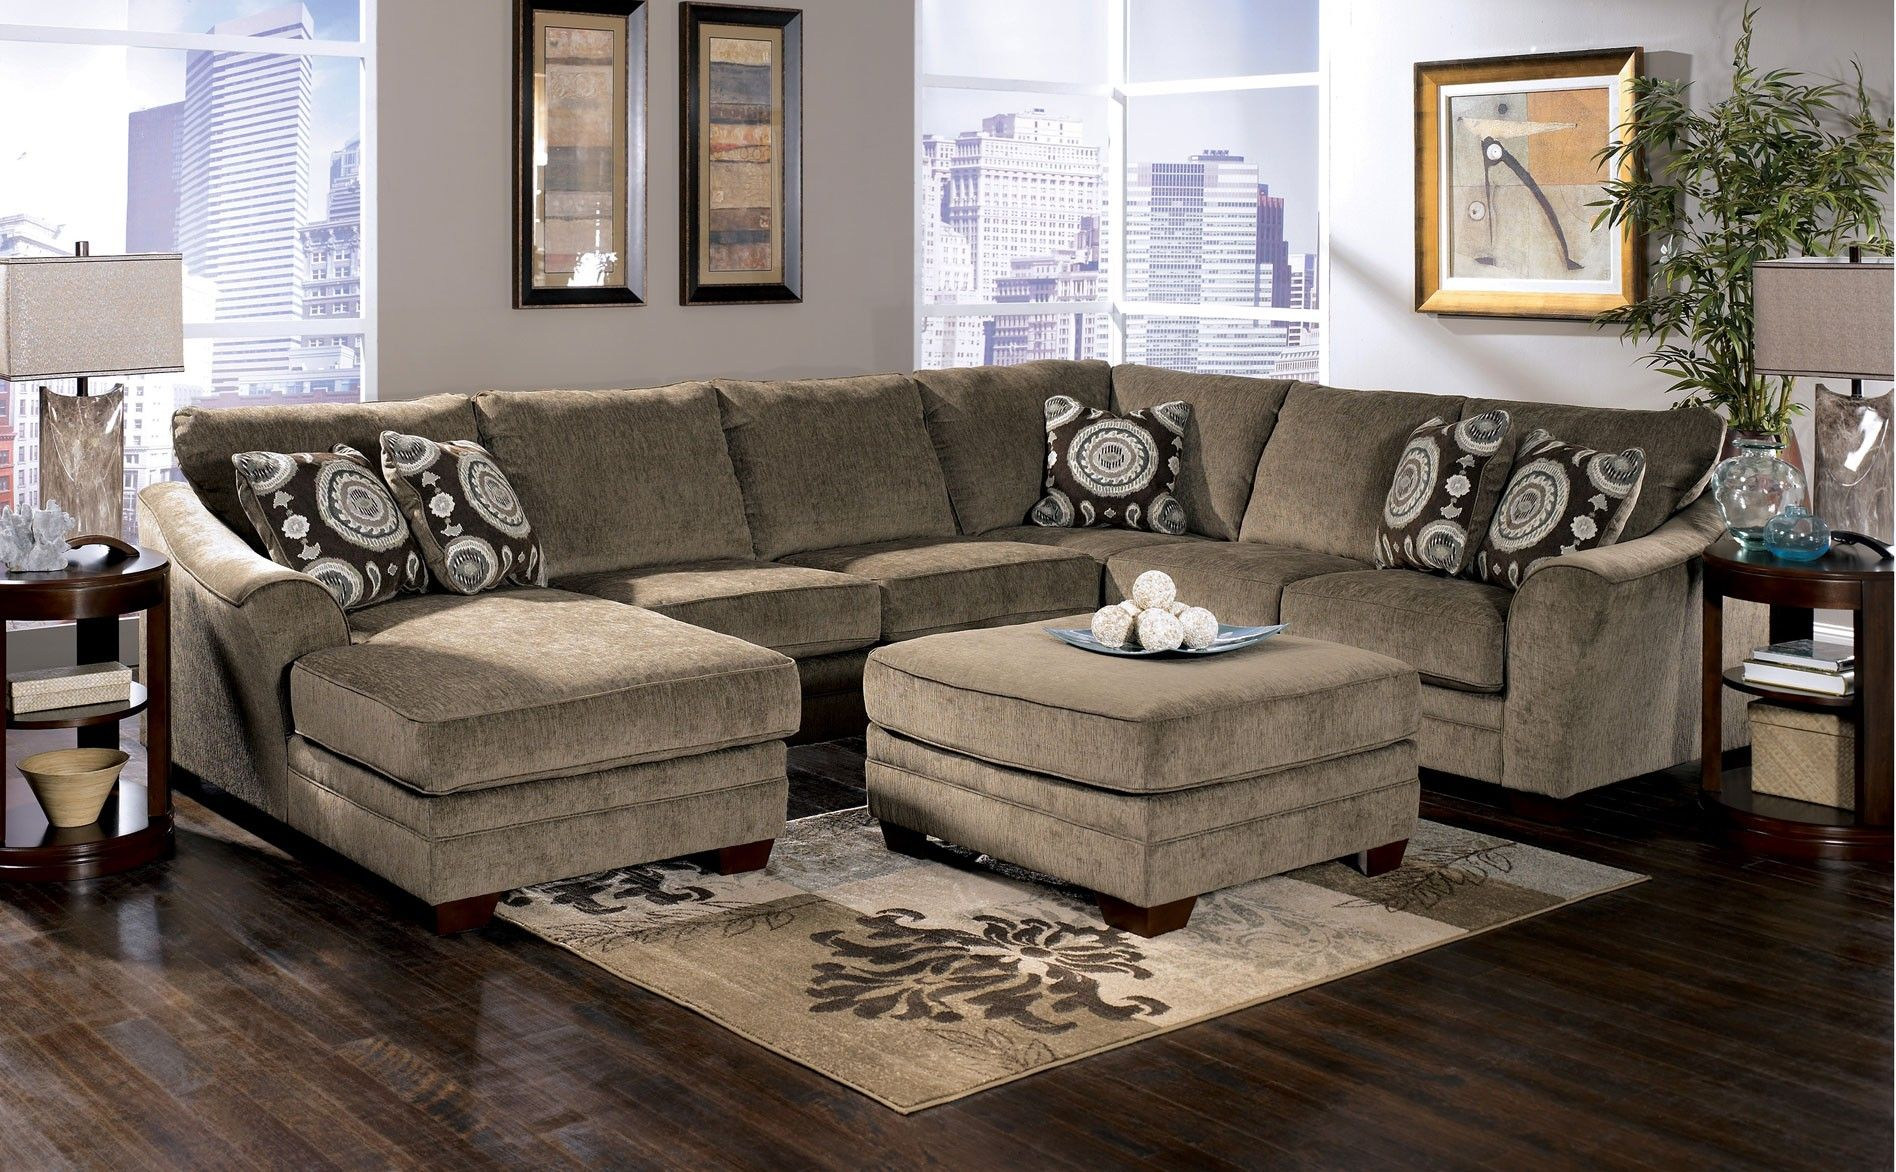 Groovy Signature Cosmo Sectional Marble Sectionals Raleigh Download Free Architecture Designs Rallybritishbridgeorg